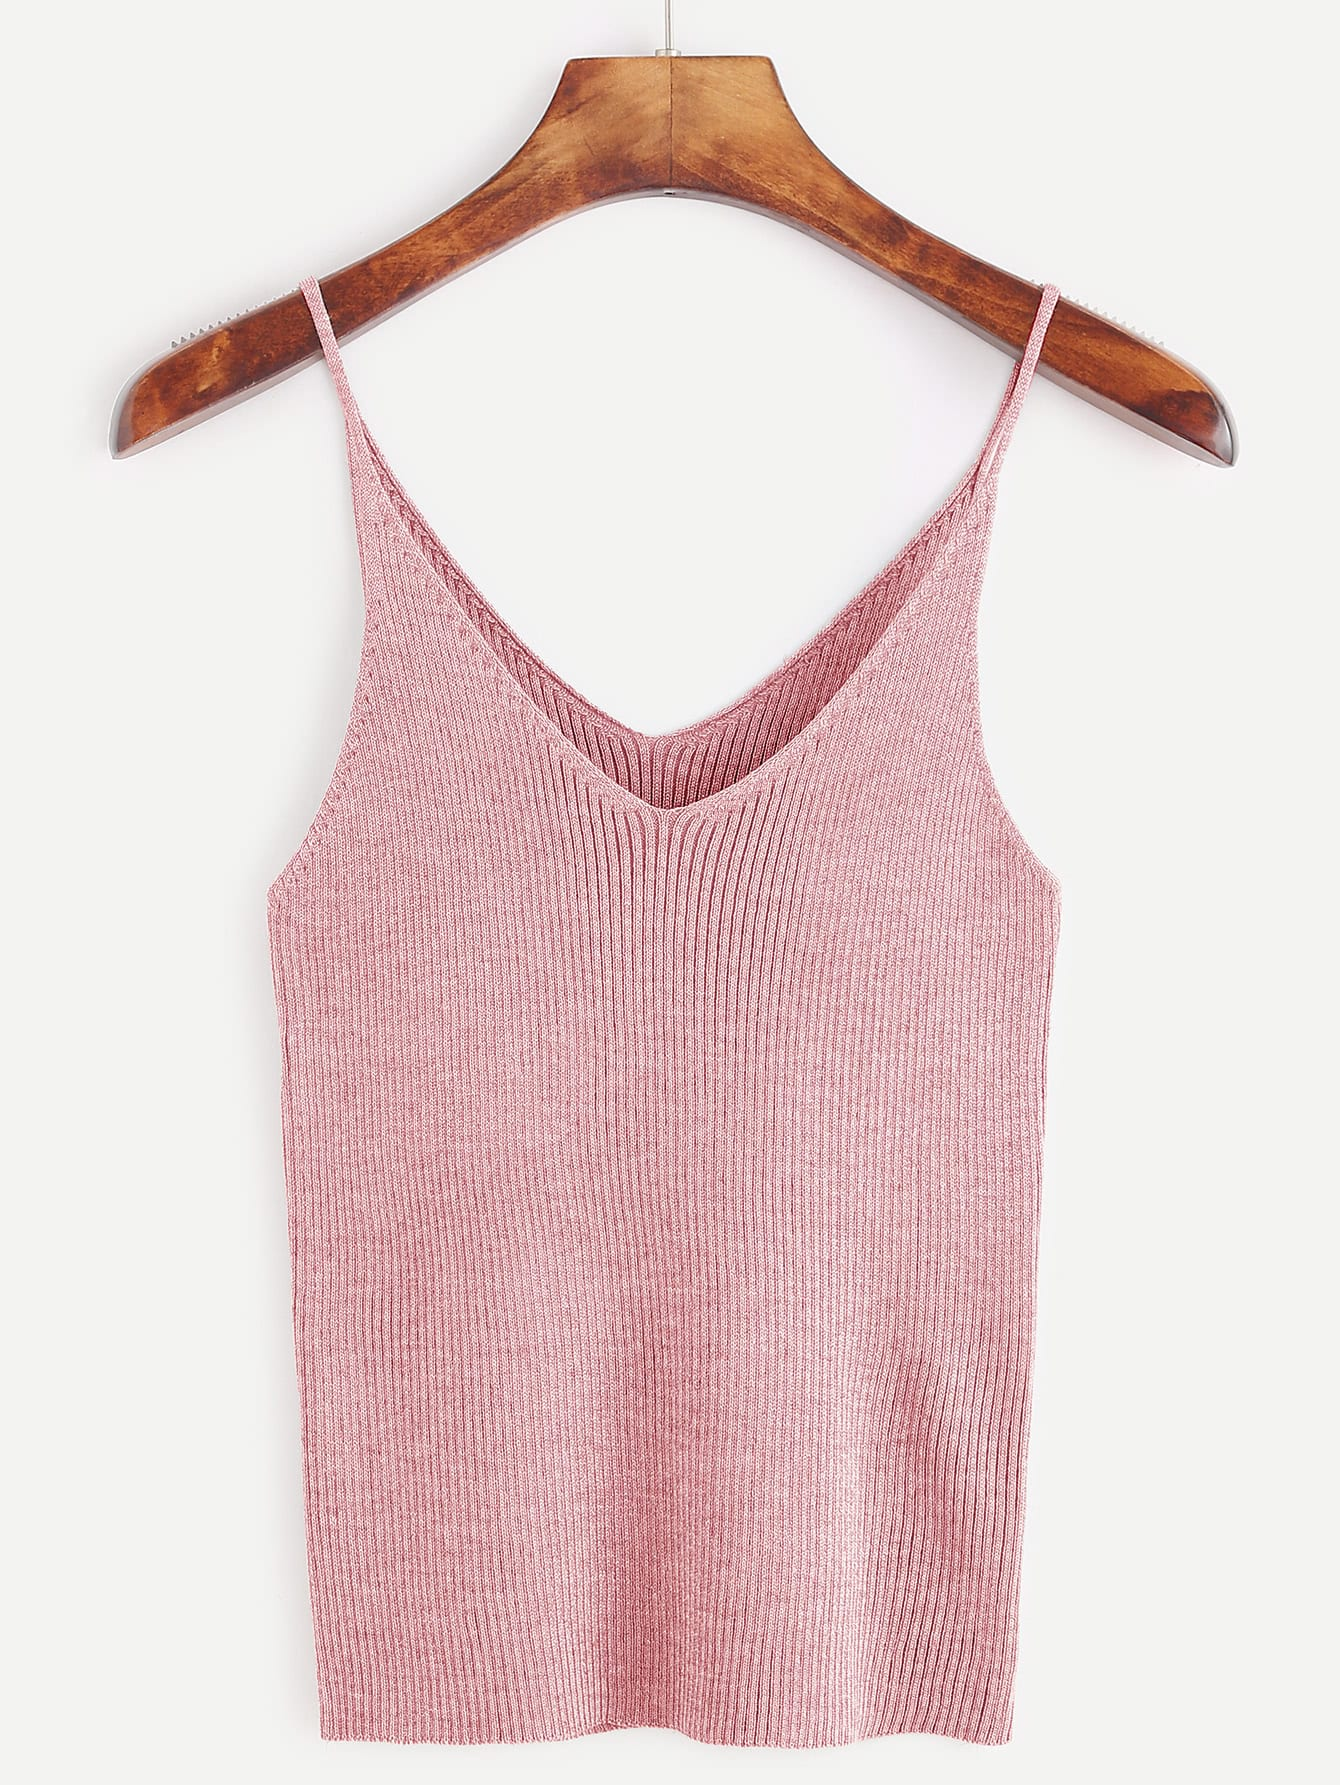 Pink Ribbed Knit Tight Cami Top